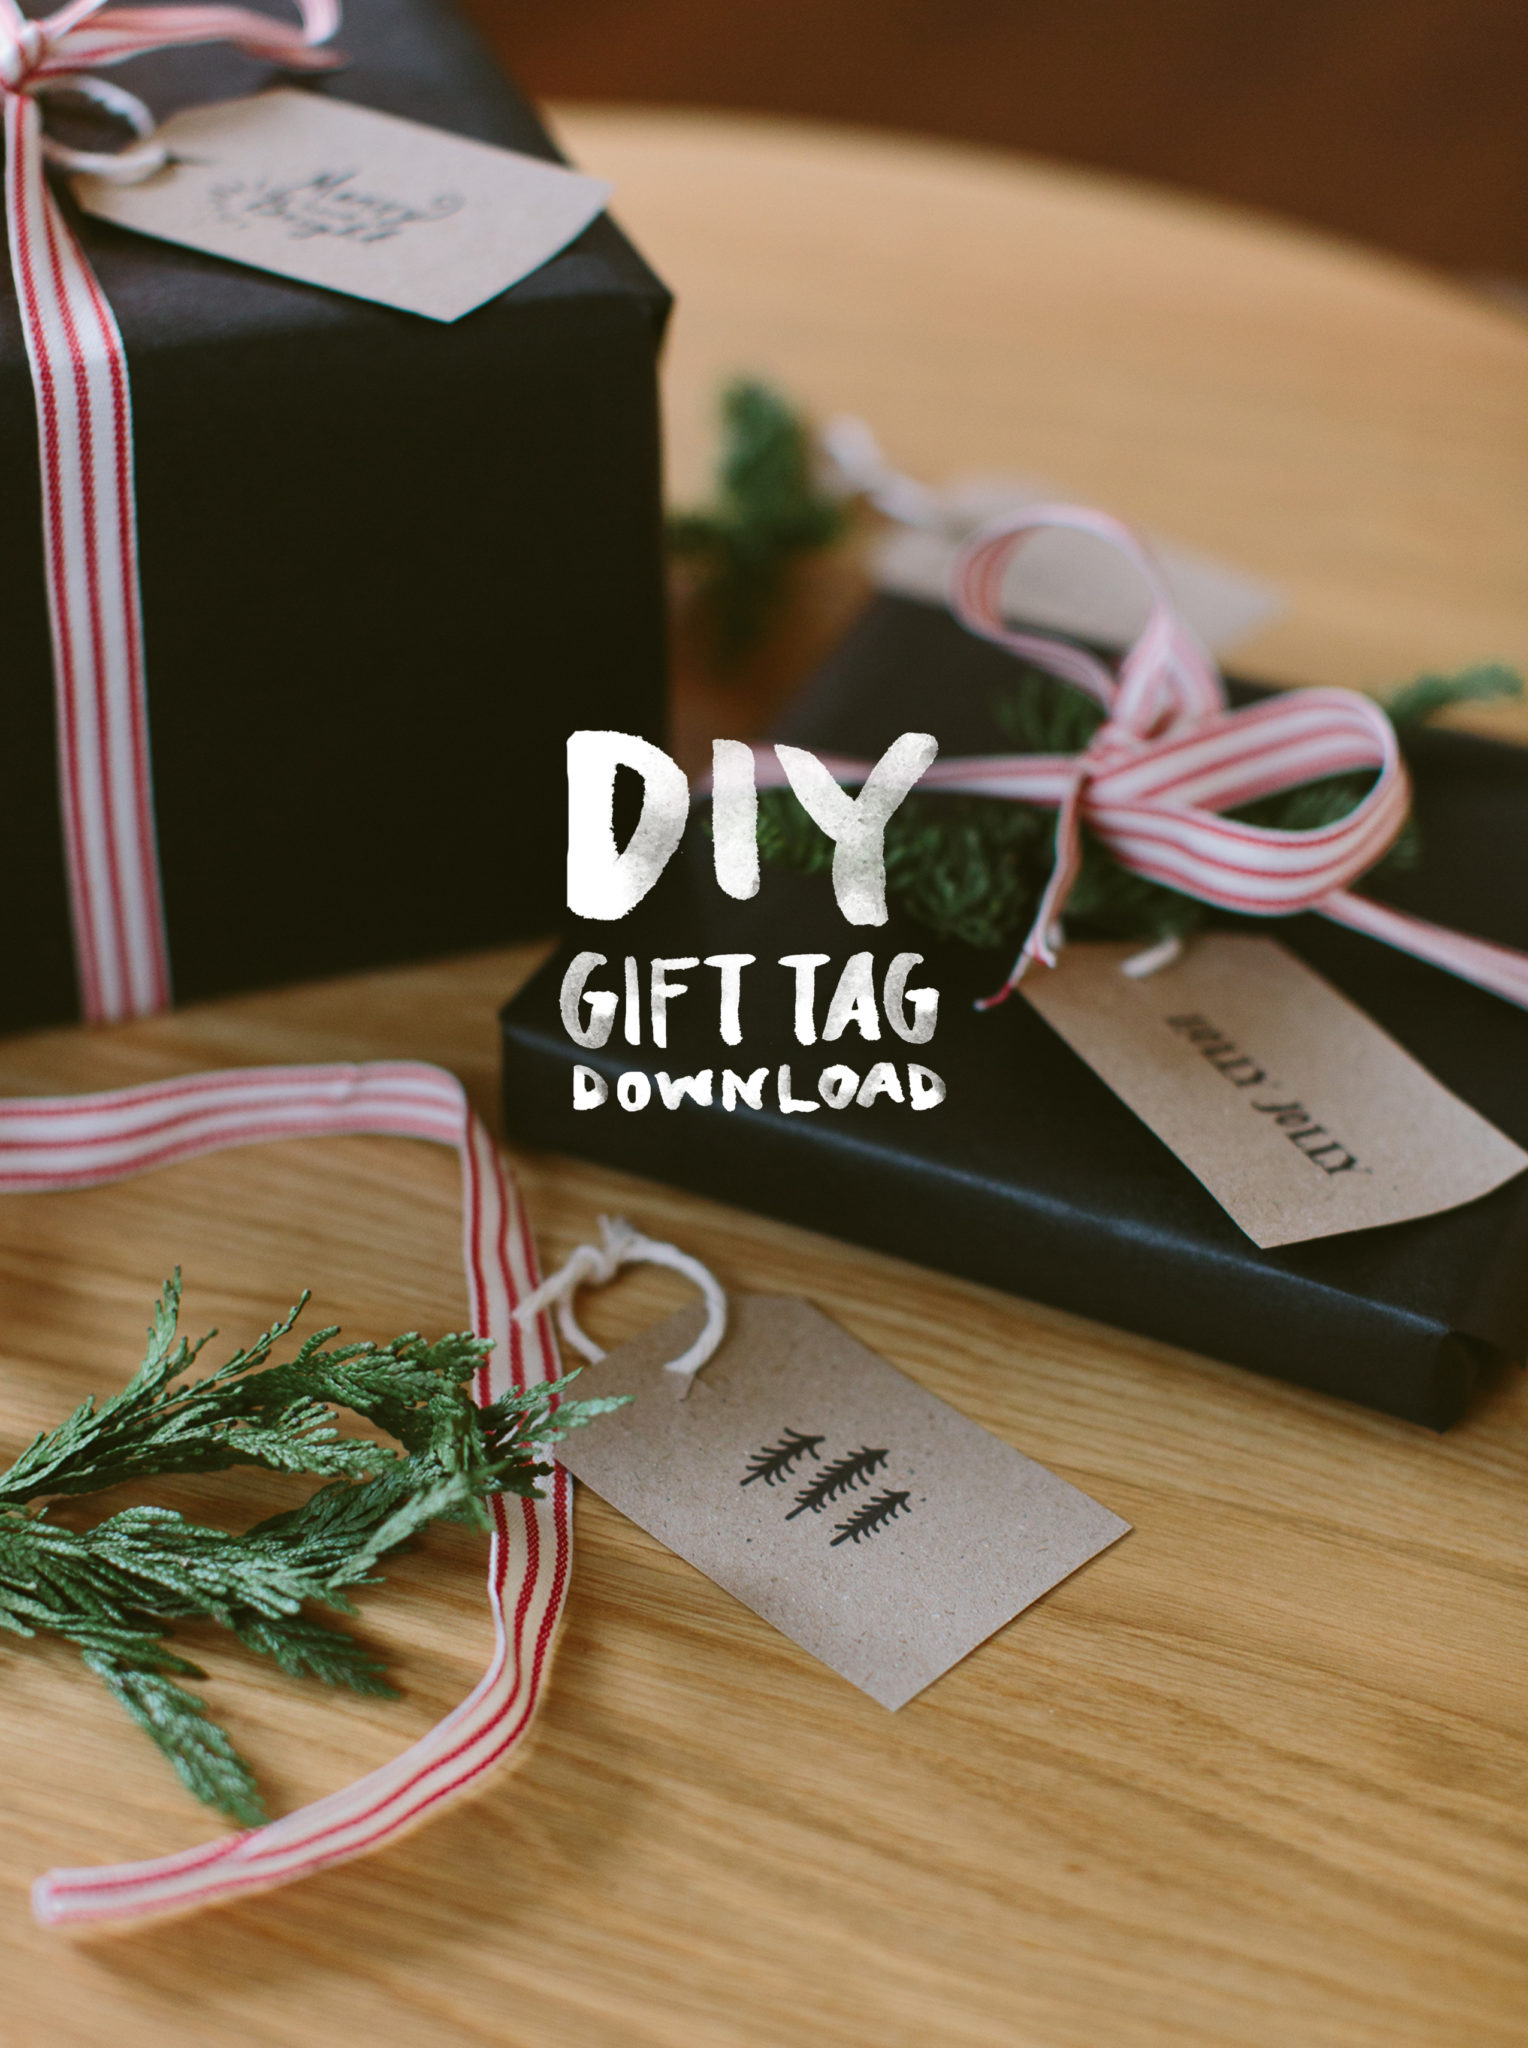 DIY Gift Tag Download | The Fresh Exchange